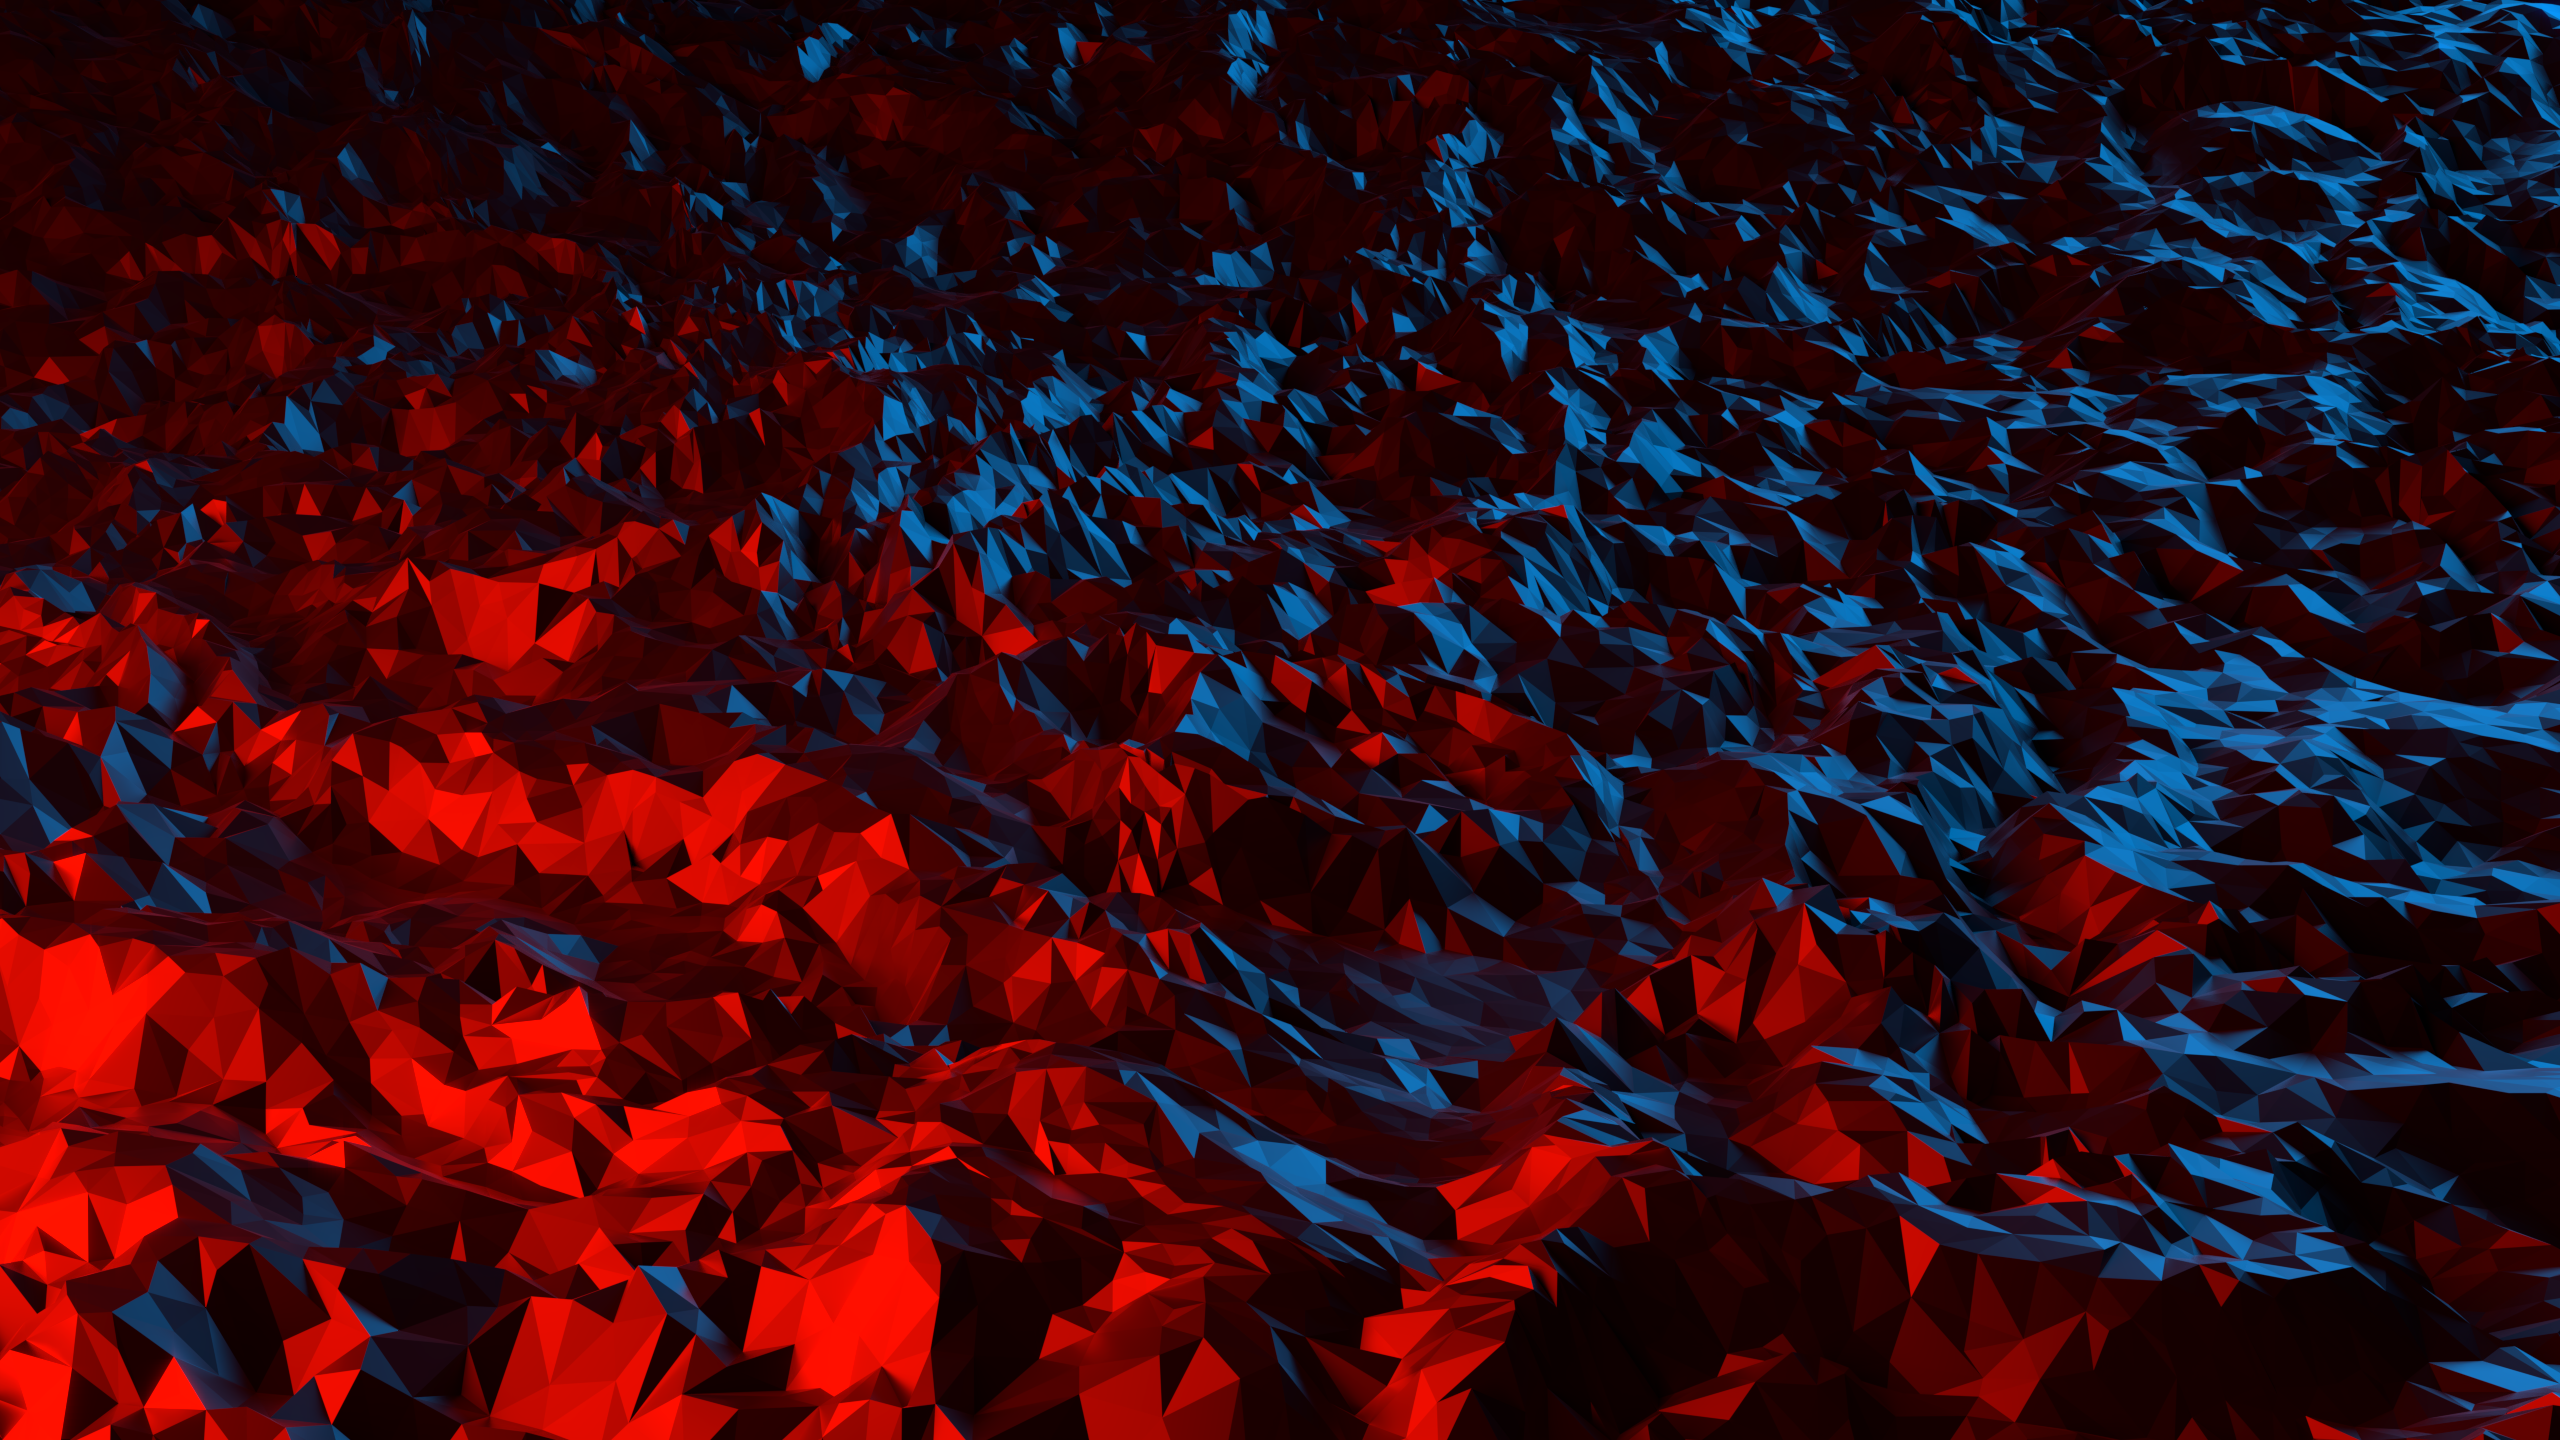 Geometry Low Poly Red 2560x1440